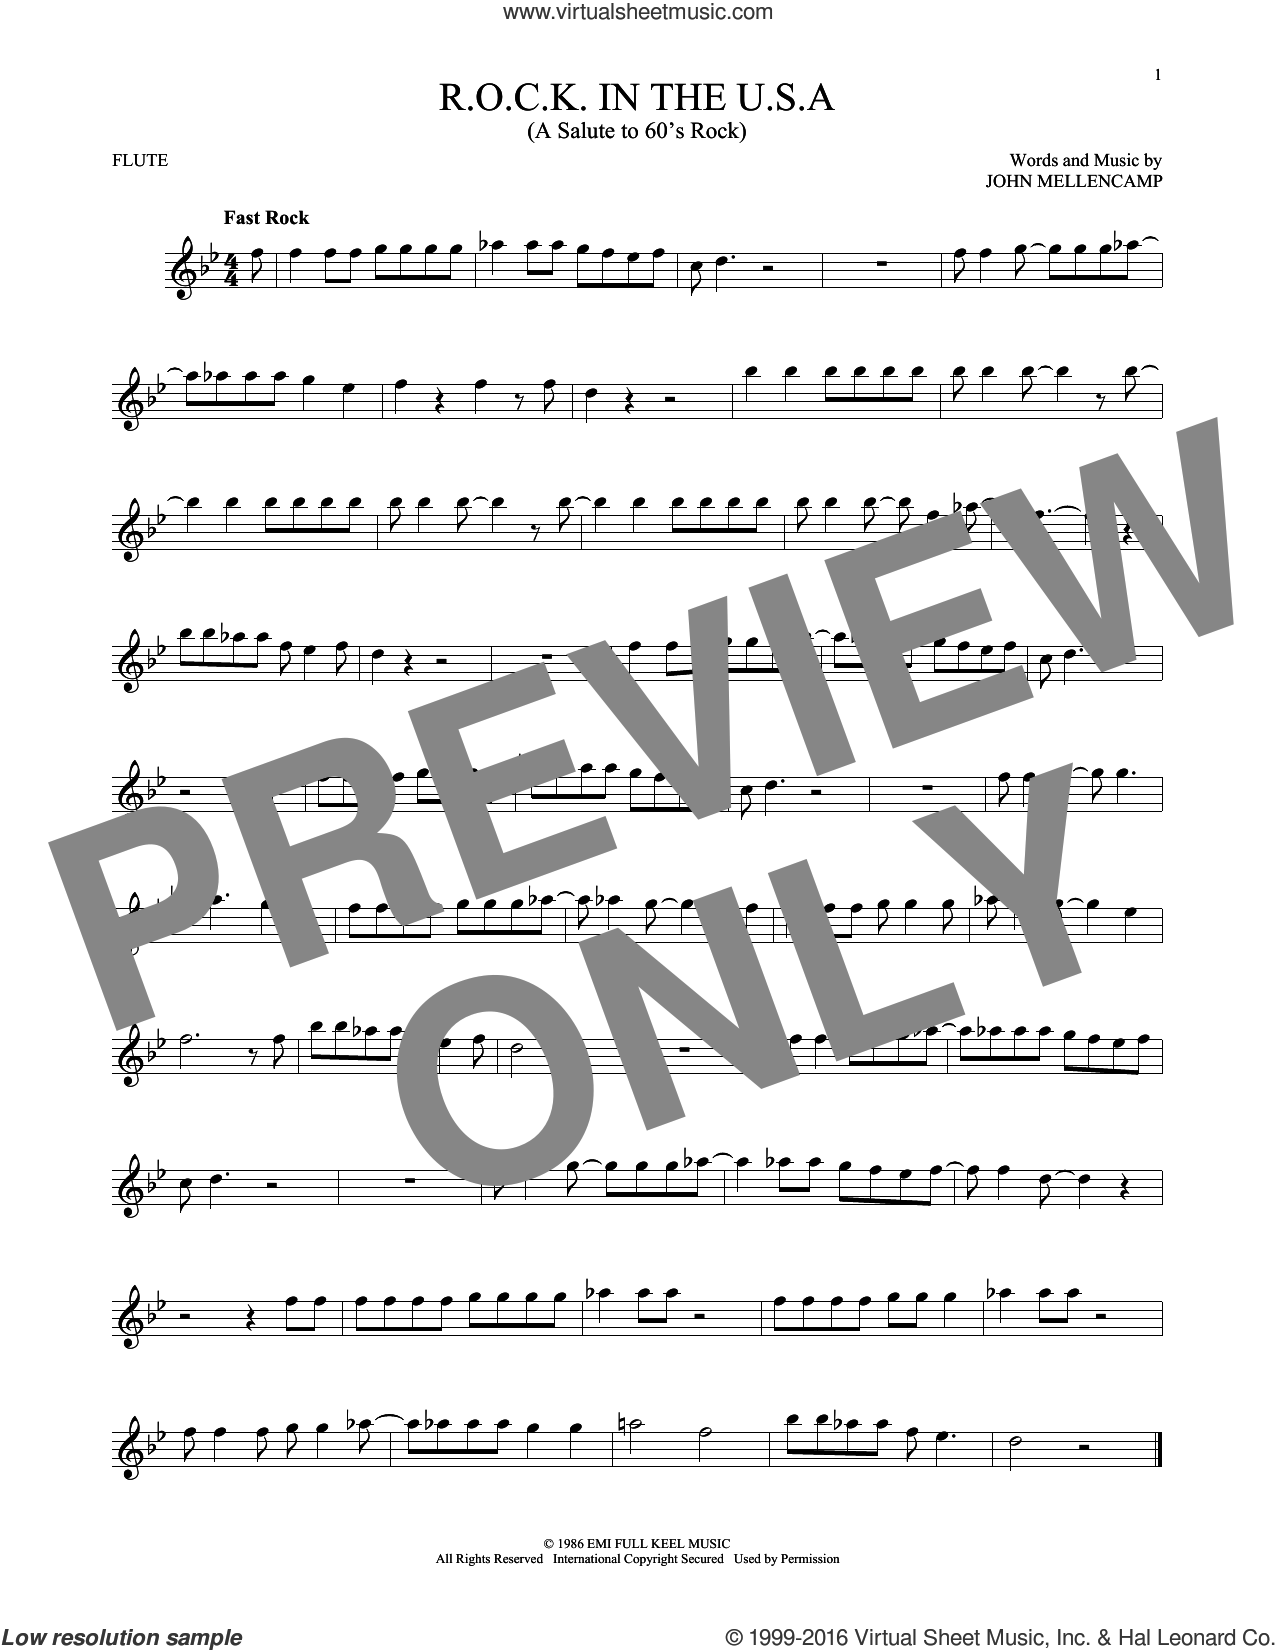 R.O.C.K. In The U.S.A. (A Salute To 60's Rock) sheet music for flute solo by John Mellencamp, intermediate. Score Image Preview.